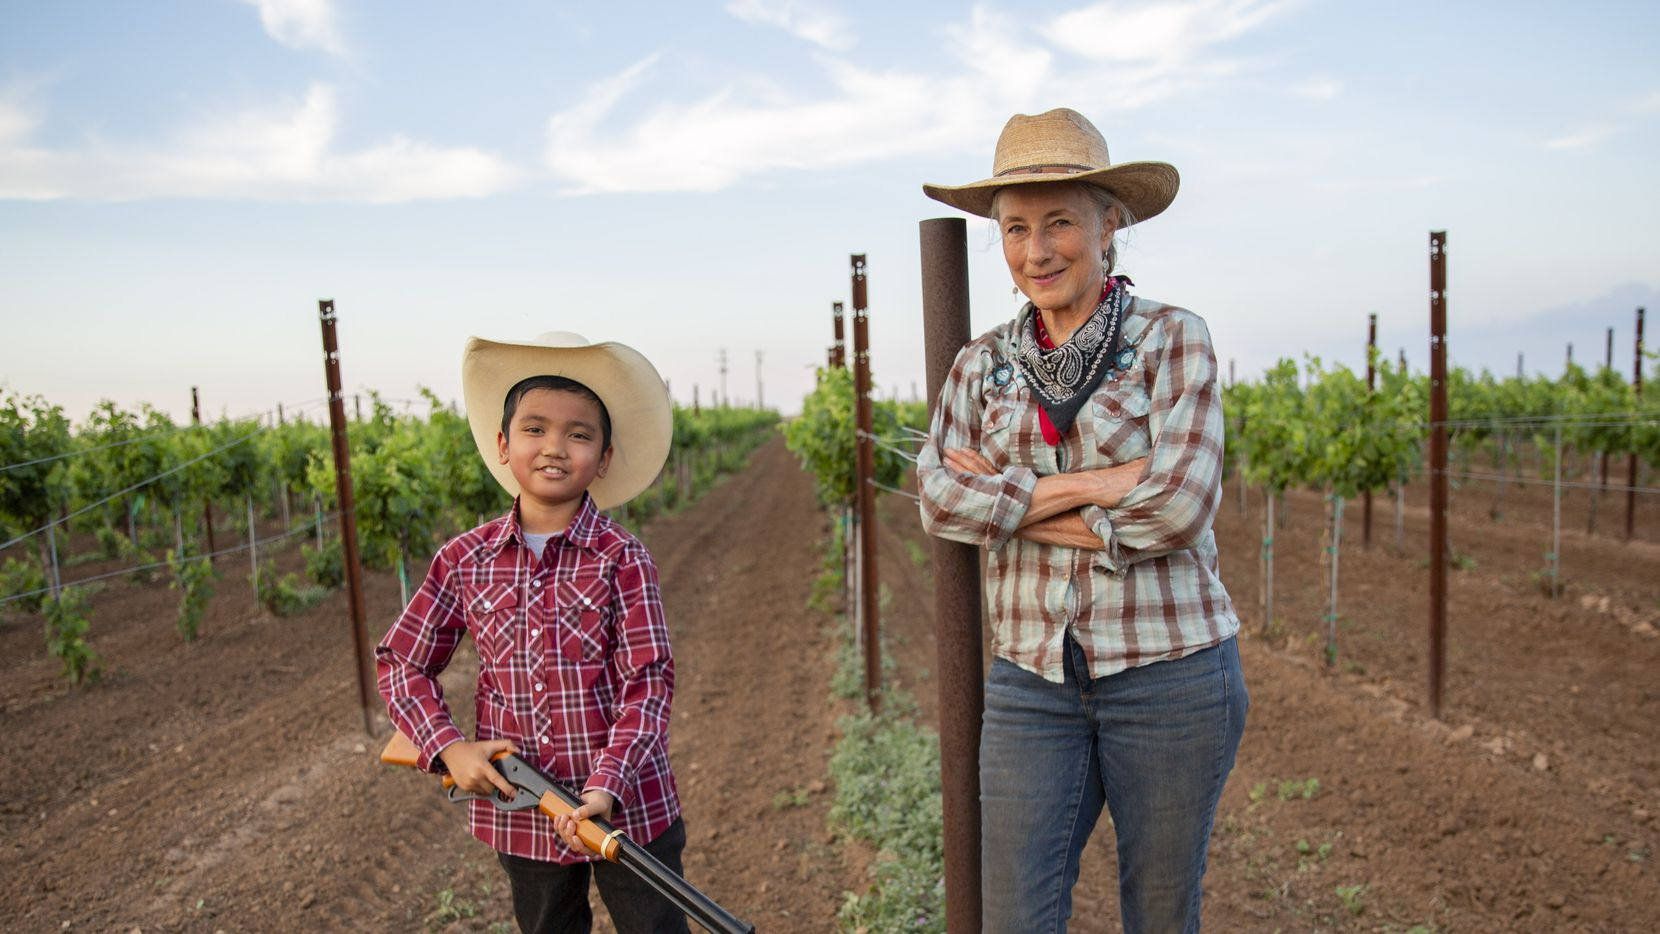 Andis Applewhite and nephew Calvin Wallace Gloria, 8, holding his BB gun, stand in Applewhite's West Texas vineyard that she says has been damaged by exposure to a chemical used in nearby cotton fields.